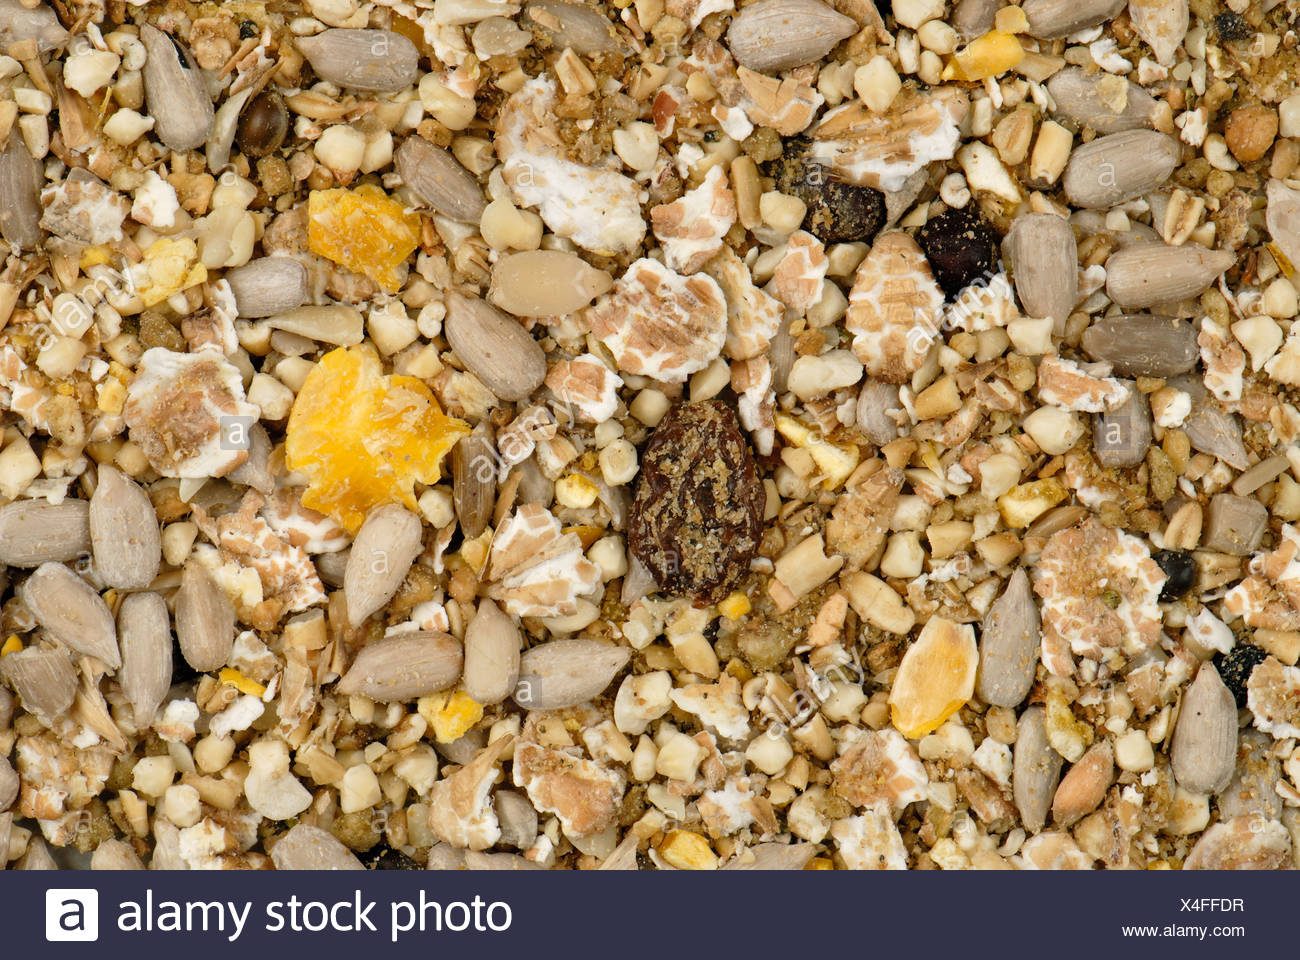 Wild bird feed for garden feeders with pine nuts crushed cereal grains and various seeds - Stock Image